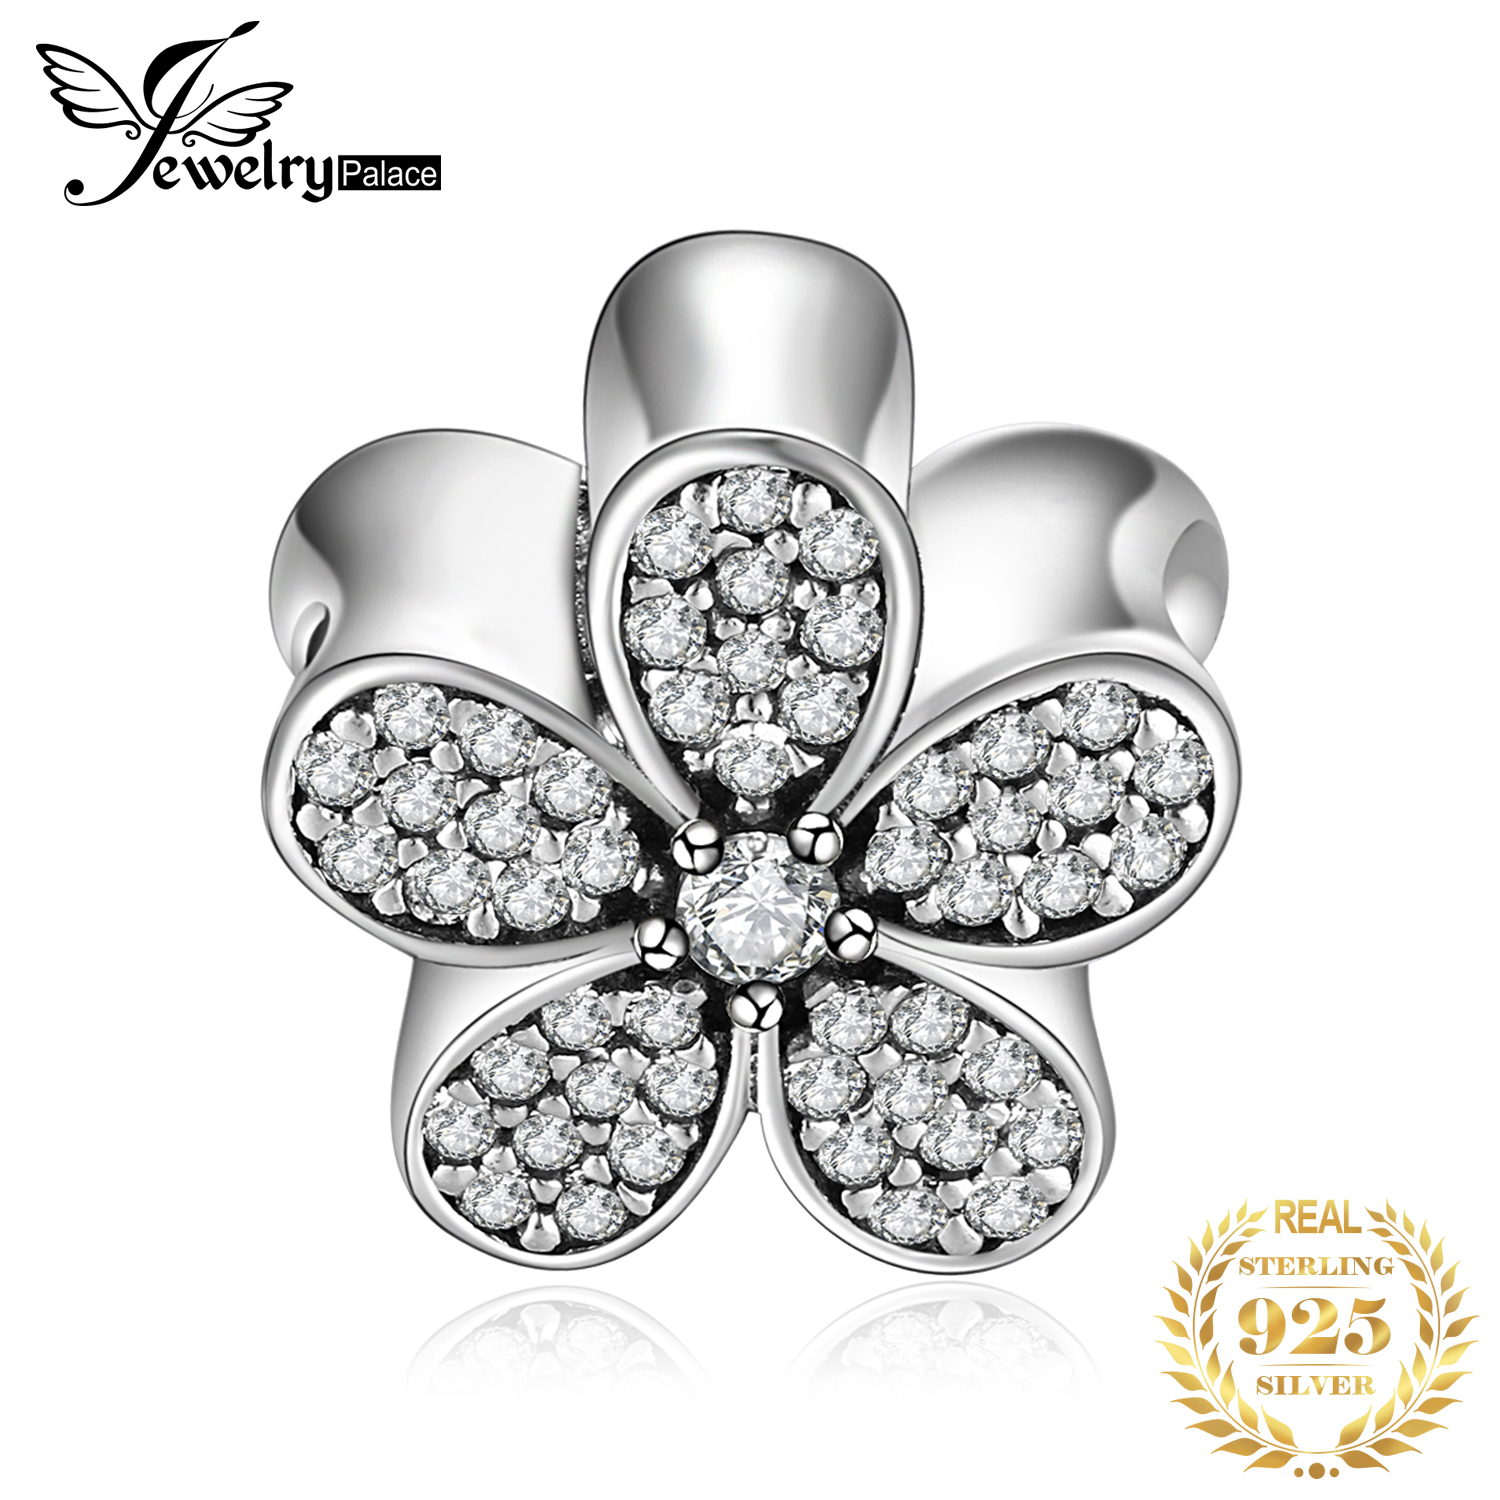 JewelryPalace Daisy Flower 925 Sterling Silver Beads Charms Silver 925 Original For Bracelet Silver 925 Original Jewelry Making